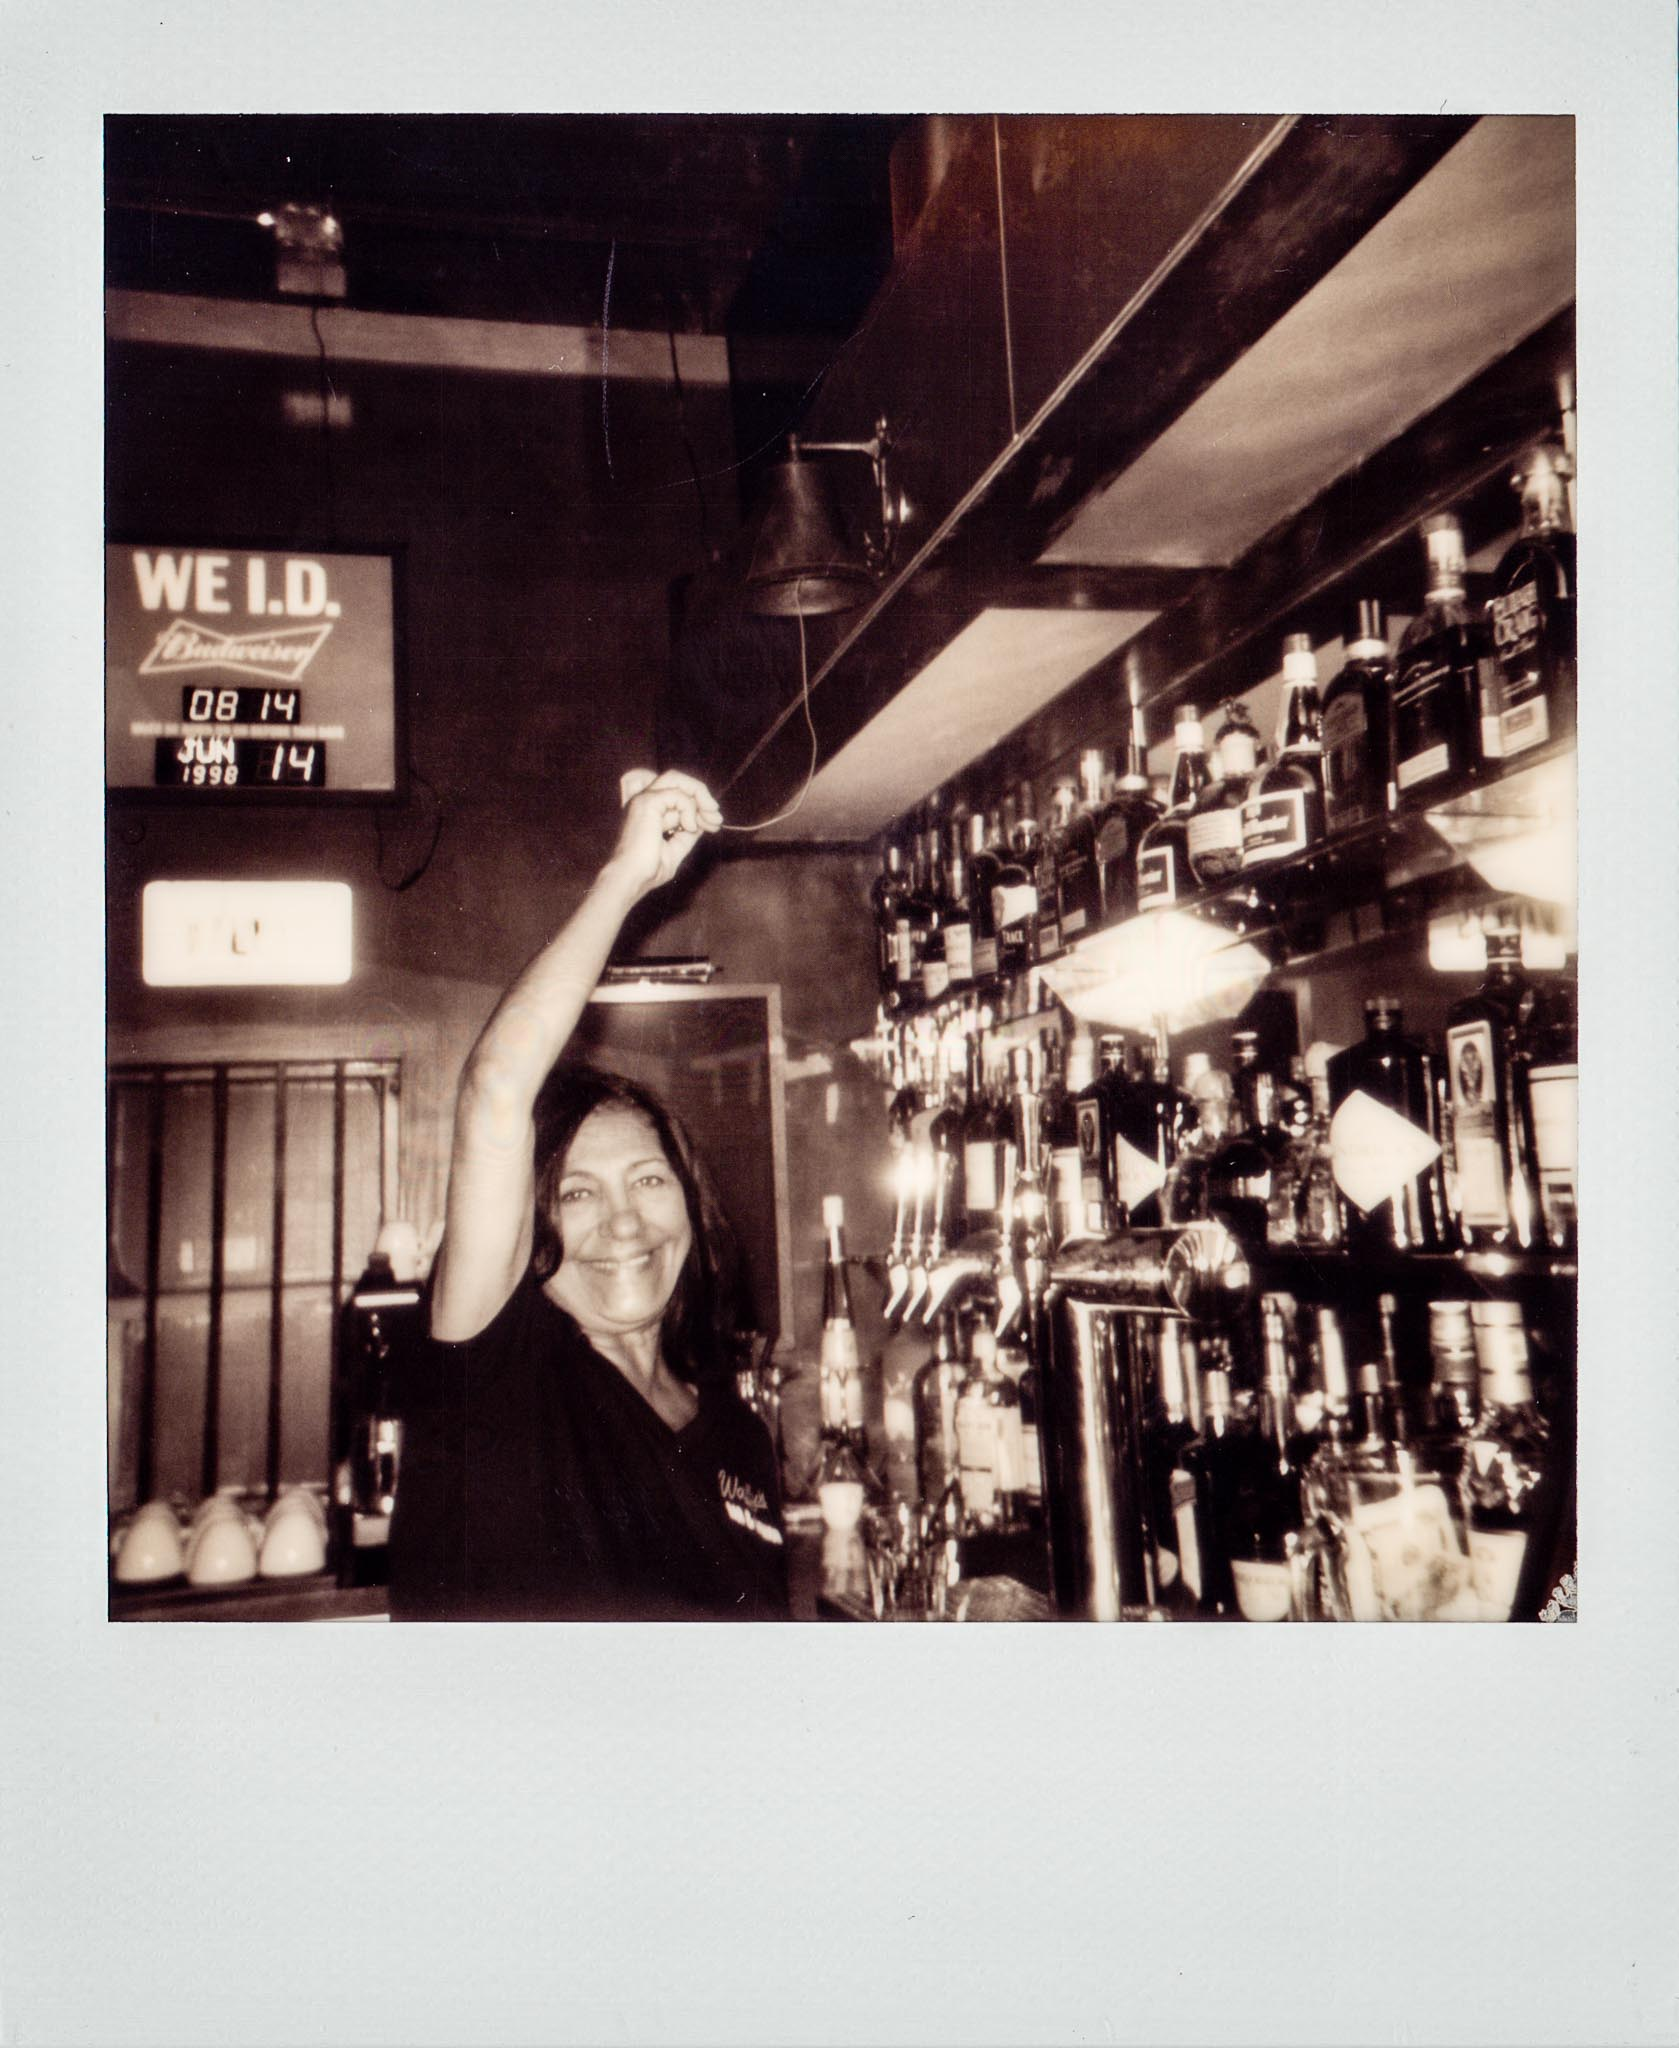 Cindy the bartender ringing the bell at Wallys Mills Avenue Liquors